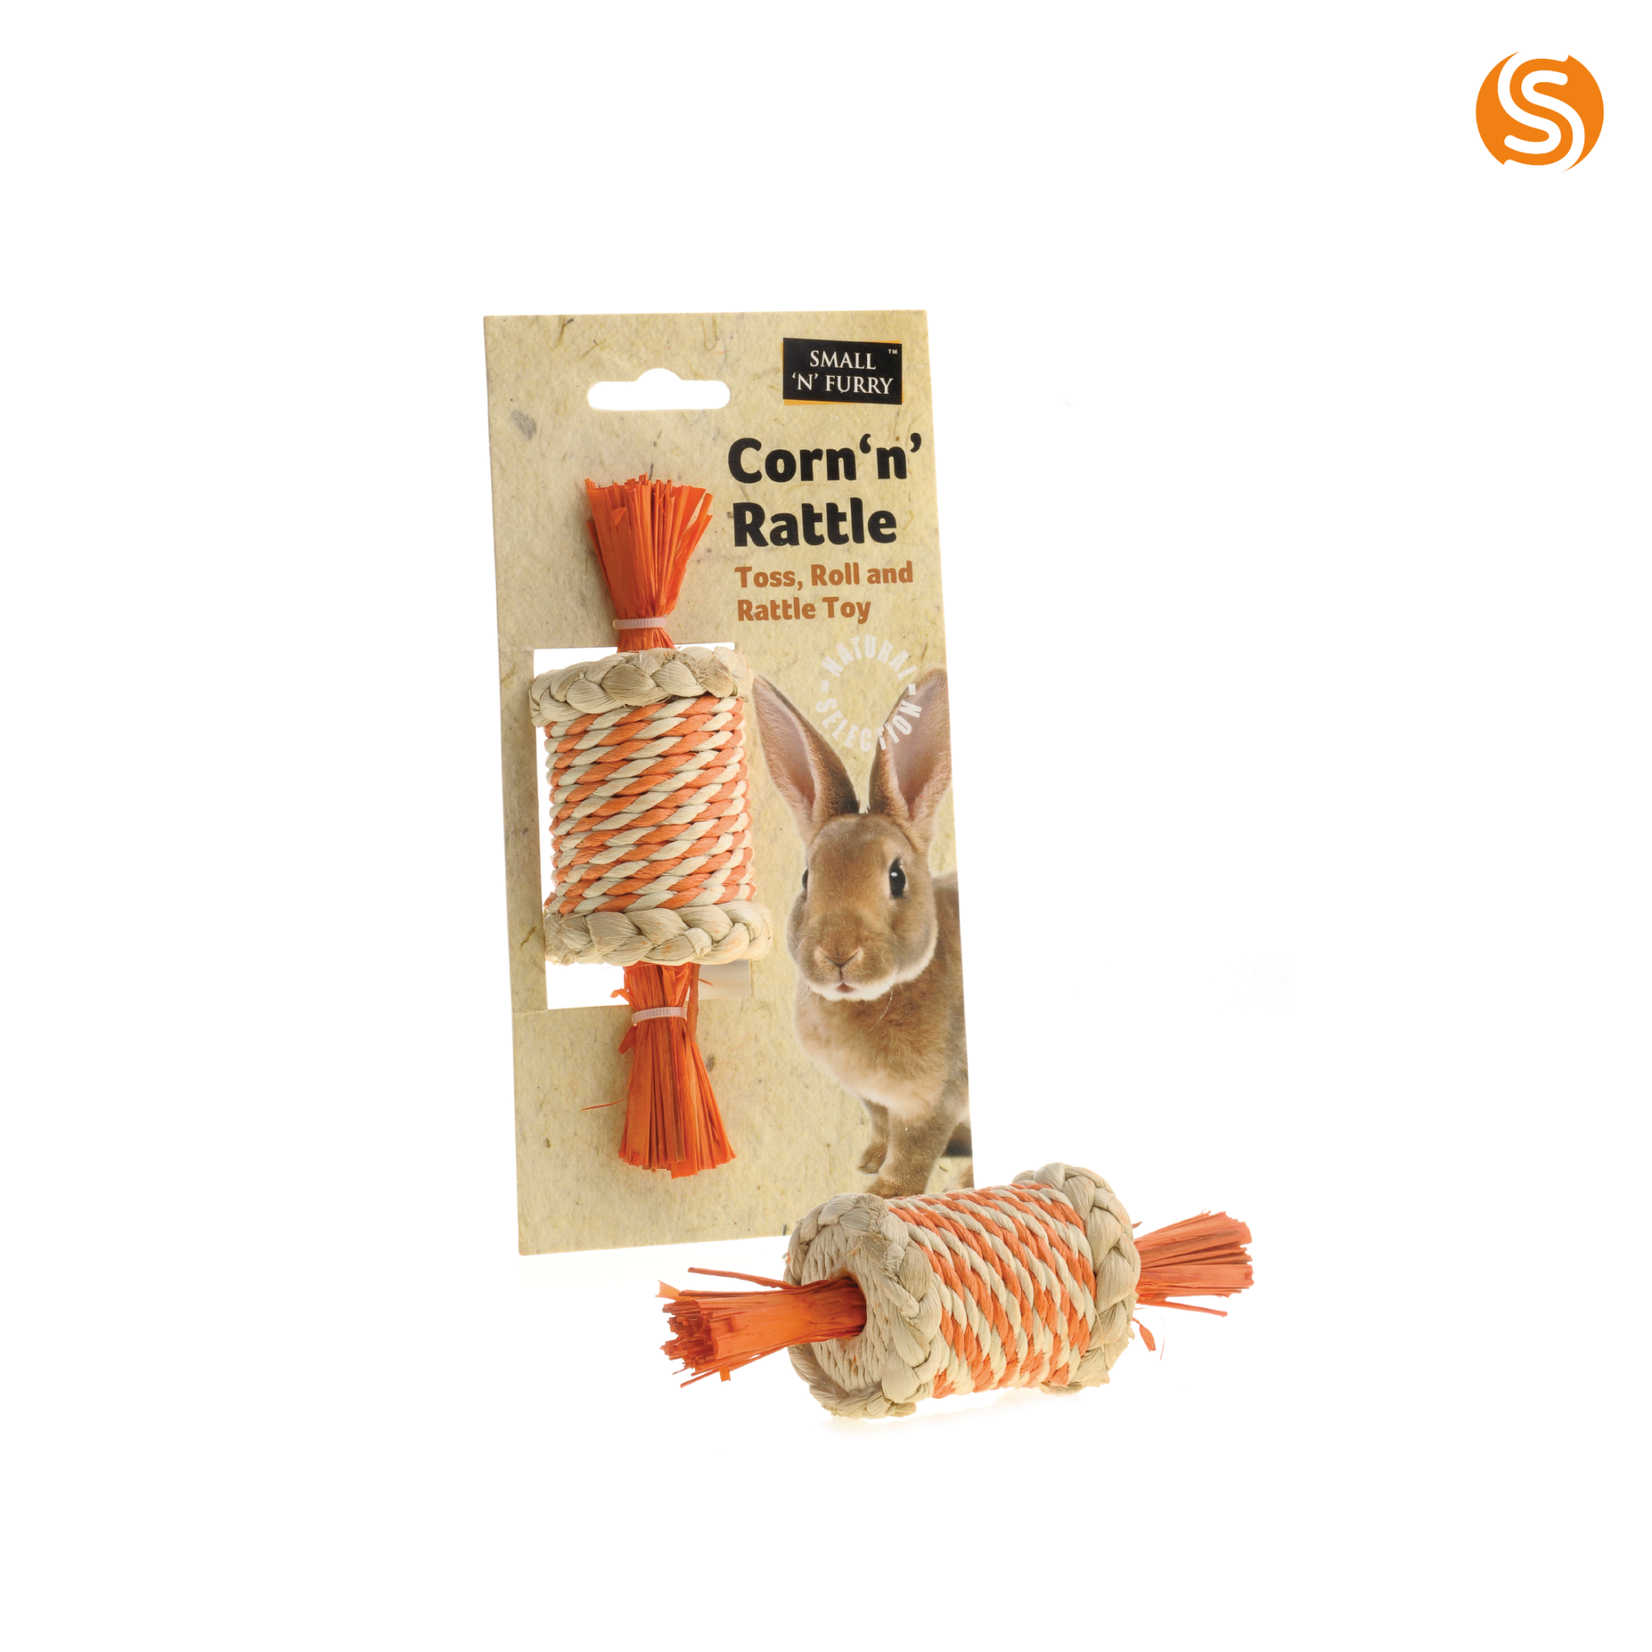 sharples Corn 'n' Rattle Roller Small Animal Toy